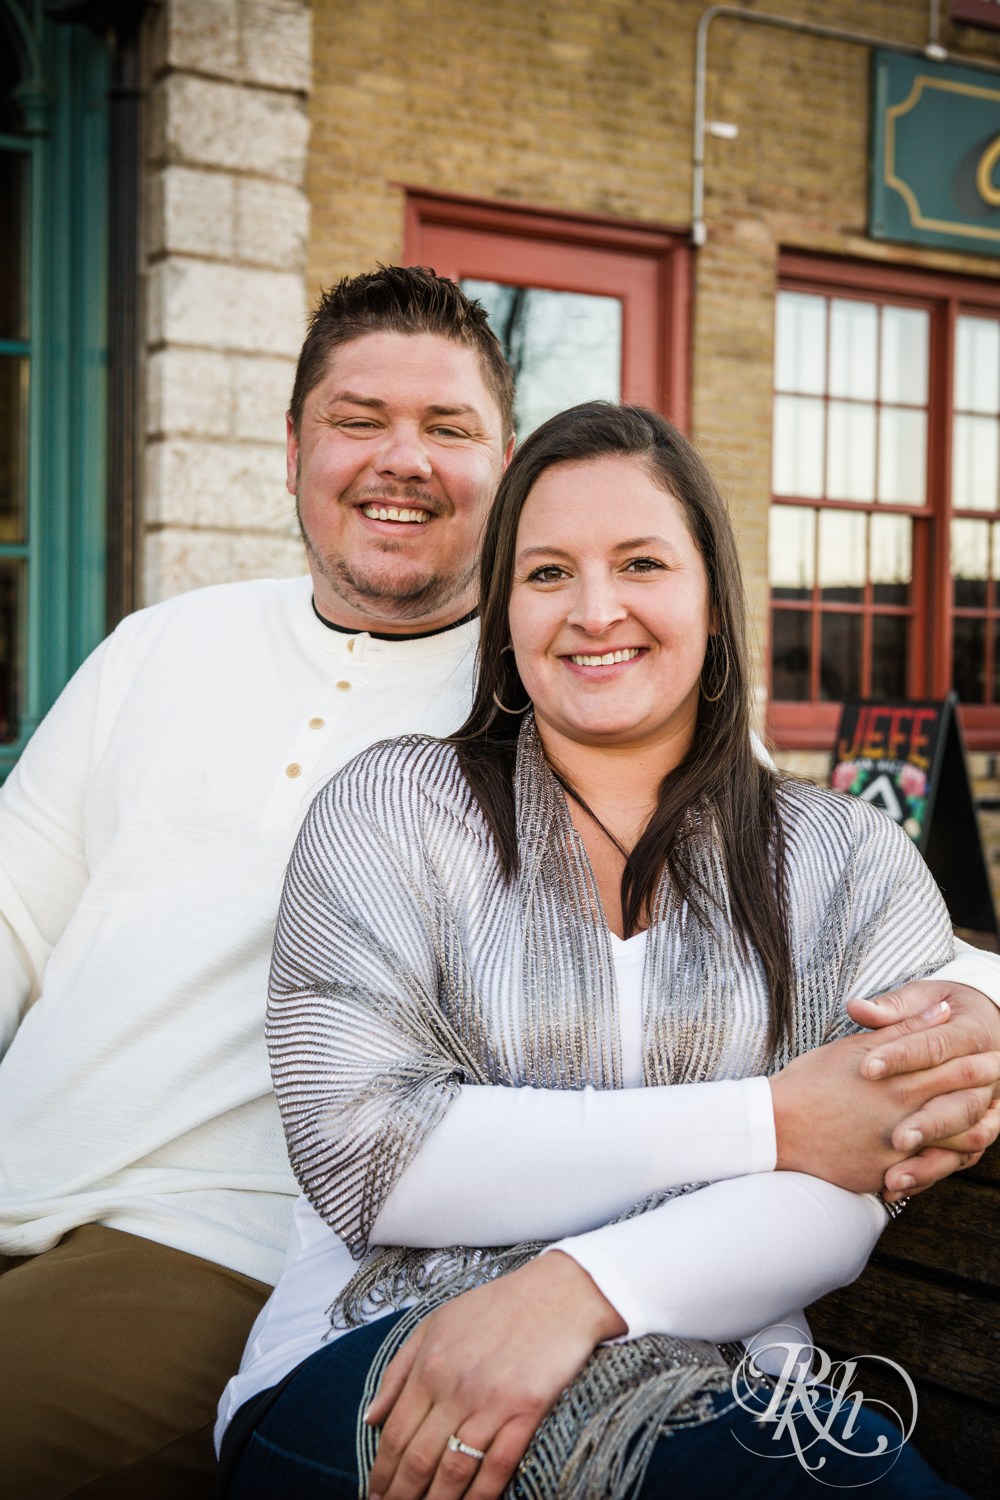 Jolene & Mike - Minnesota Engagement Photography - Sunrise - Stone Arch Bride and St. Anthony Main - RKH Images  (9 of 12).jpg